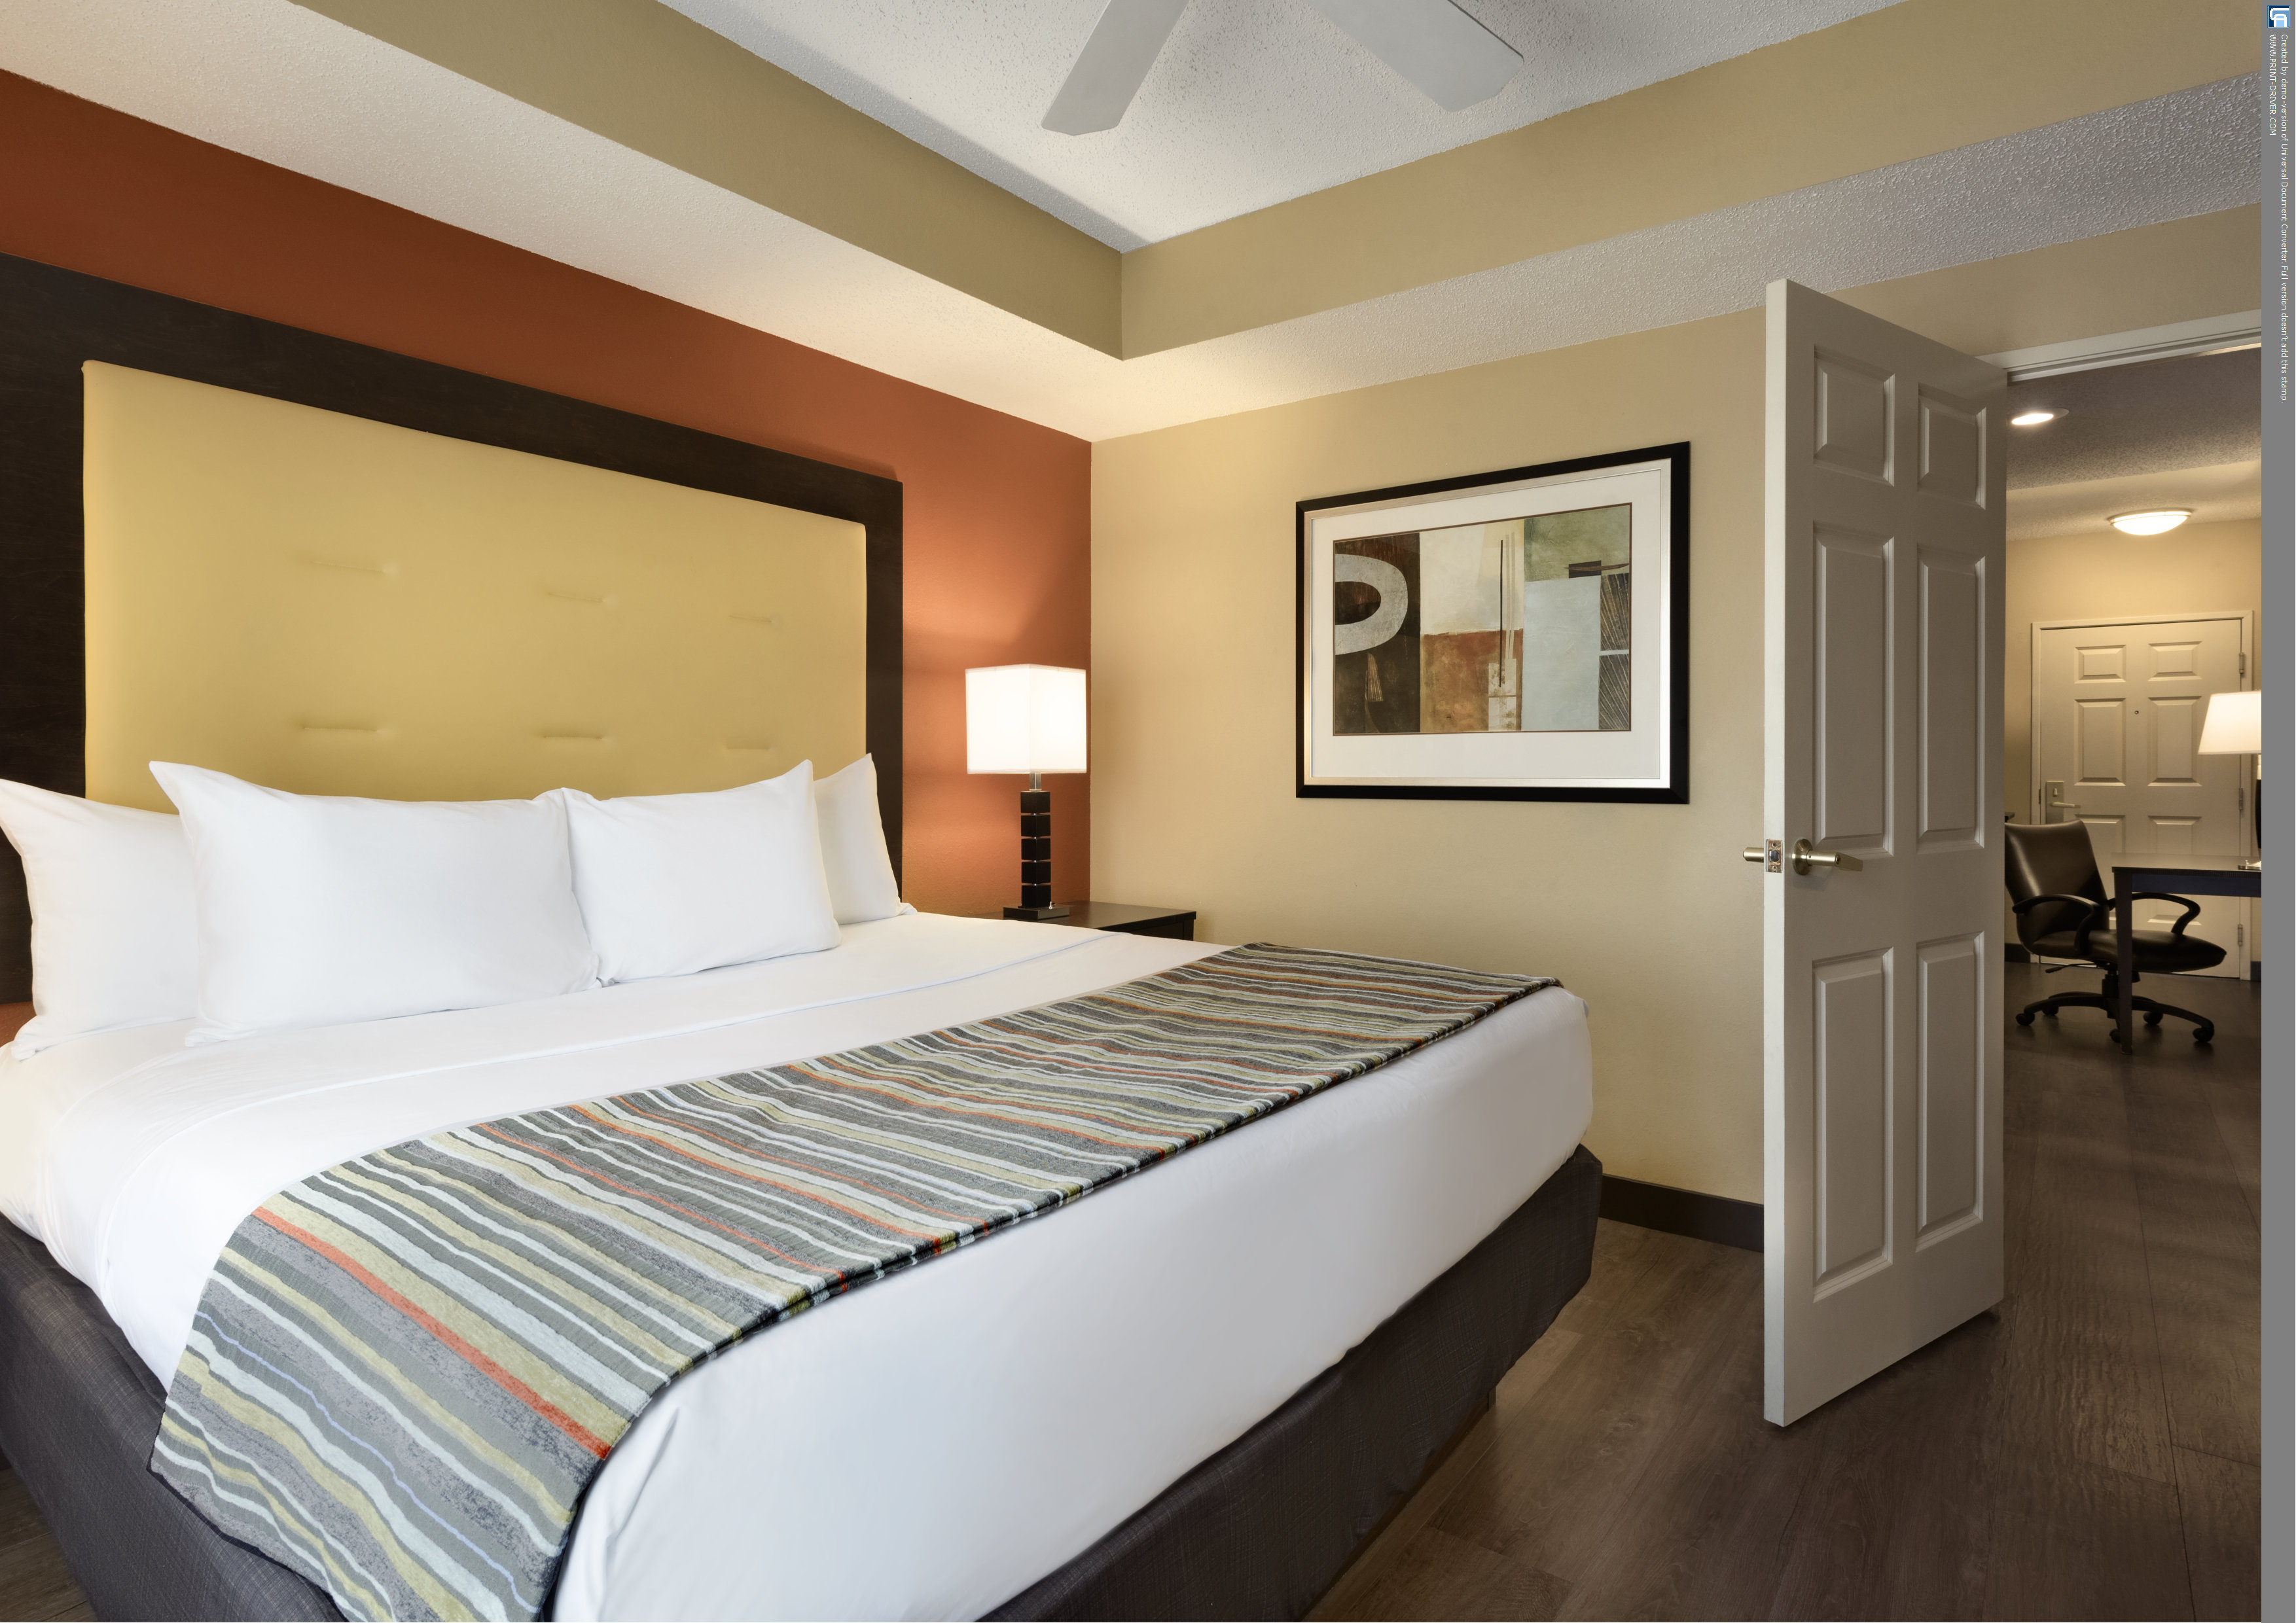 Country Inn & Suites by Radisson, Evansville, IN image 2